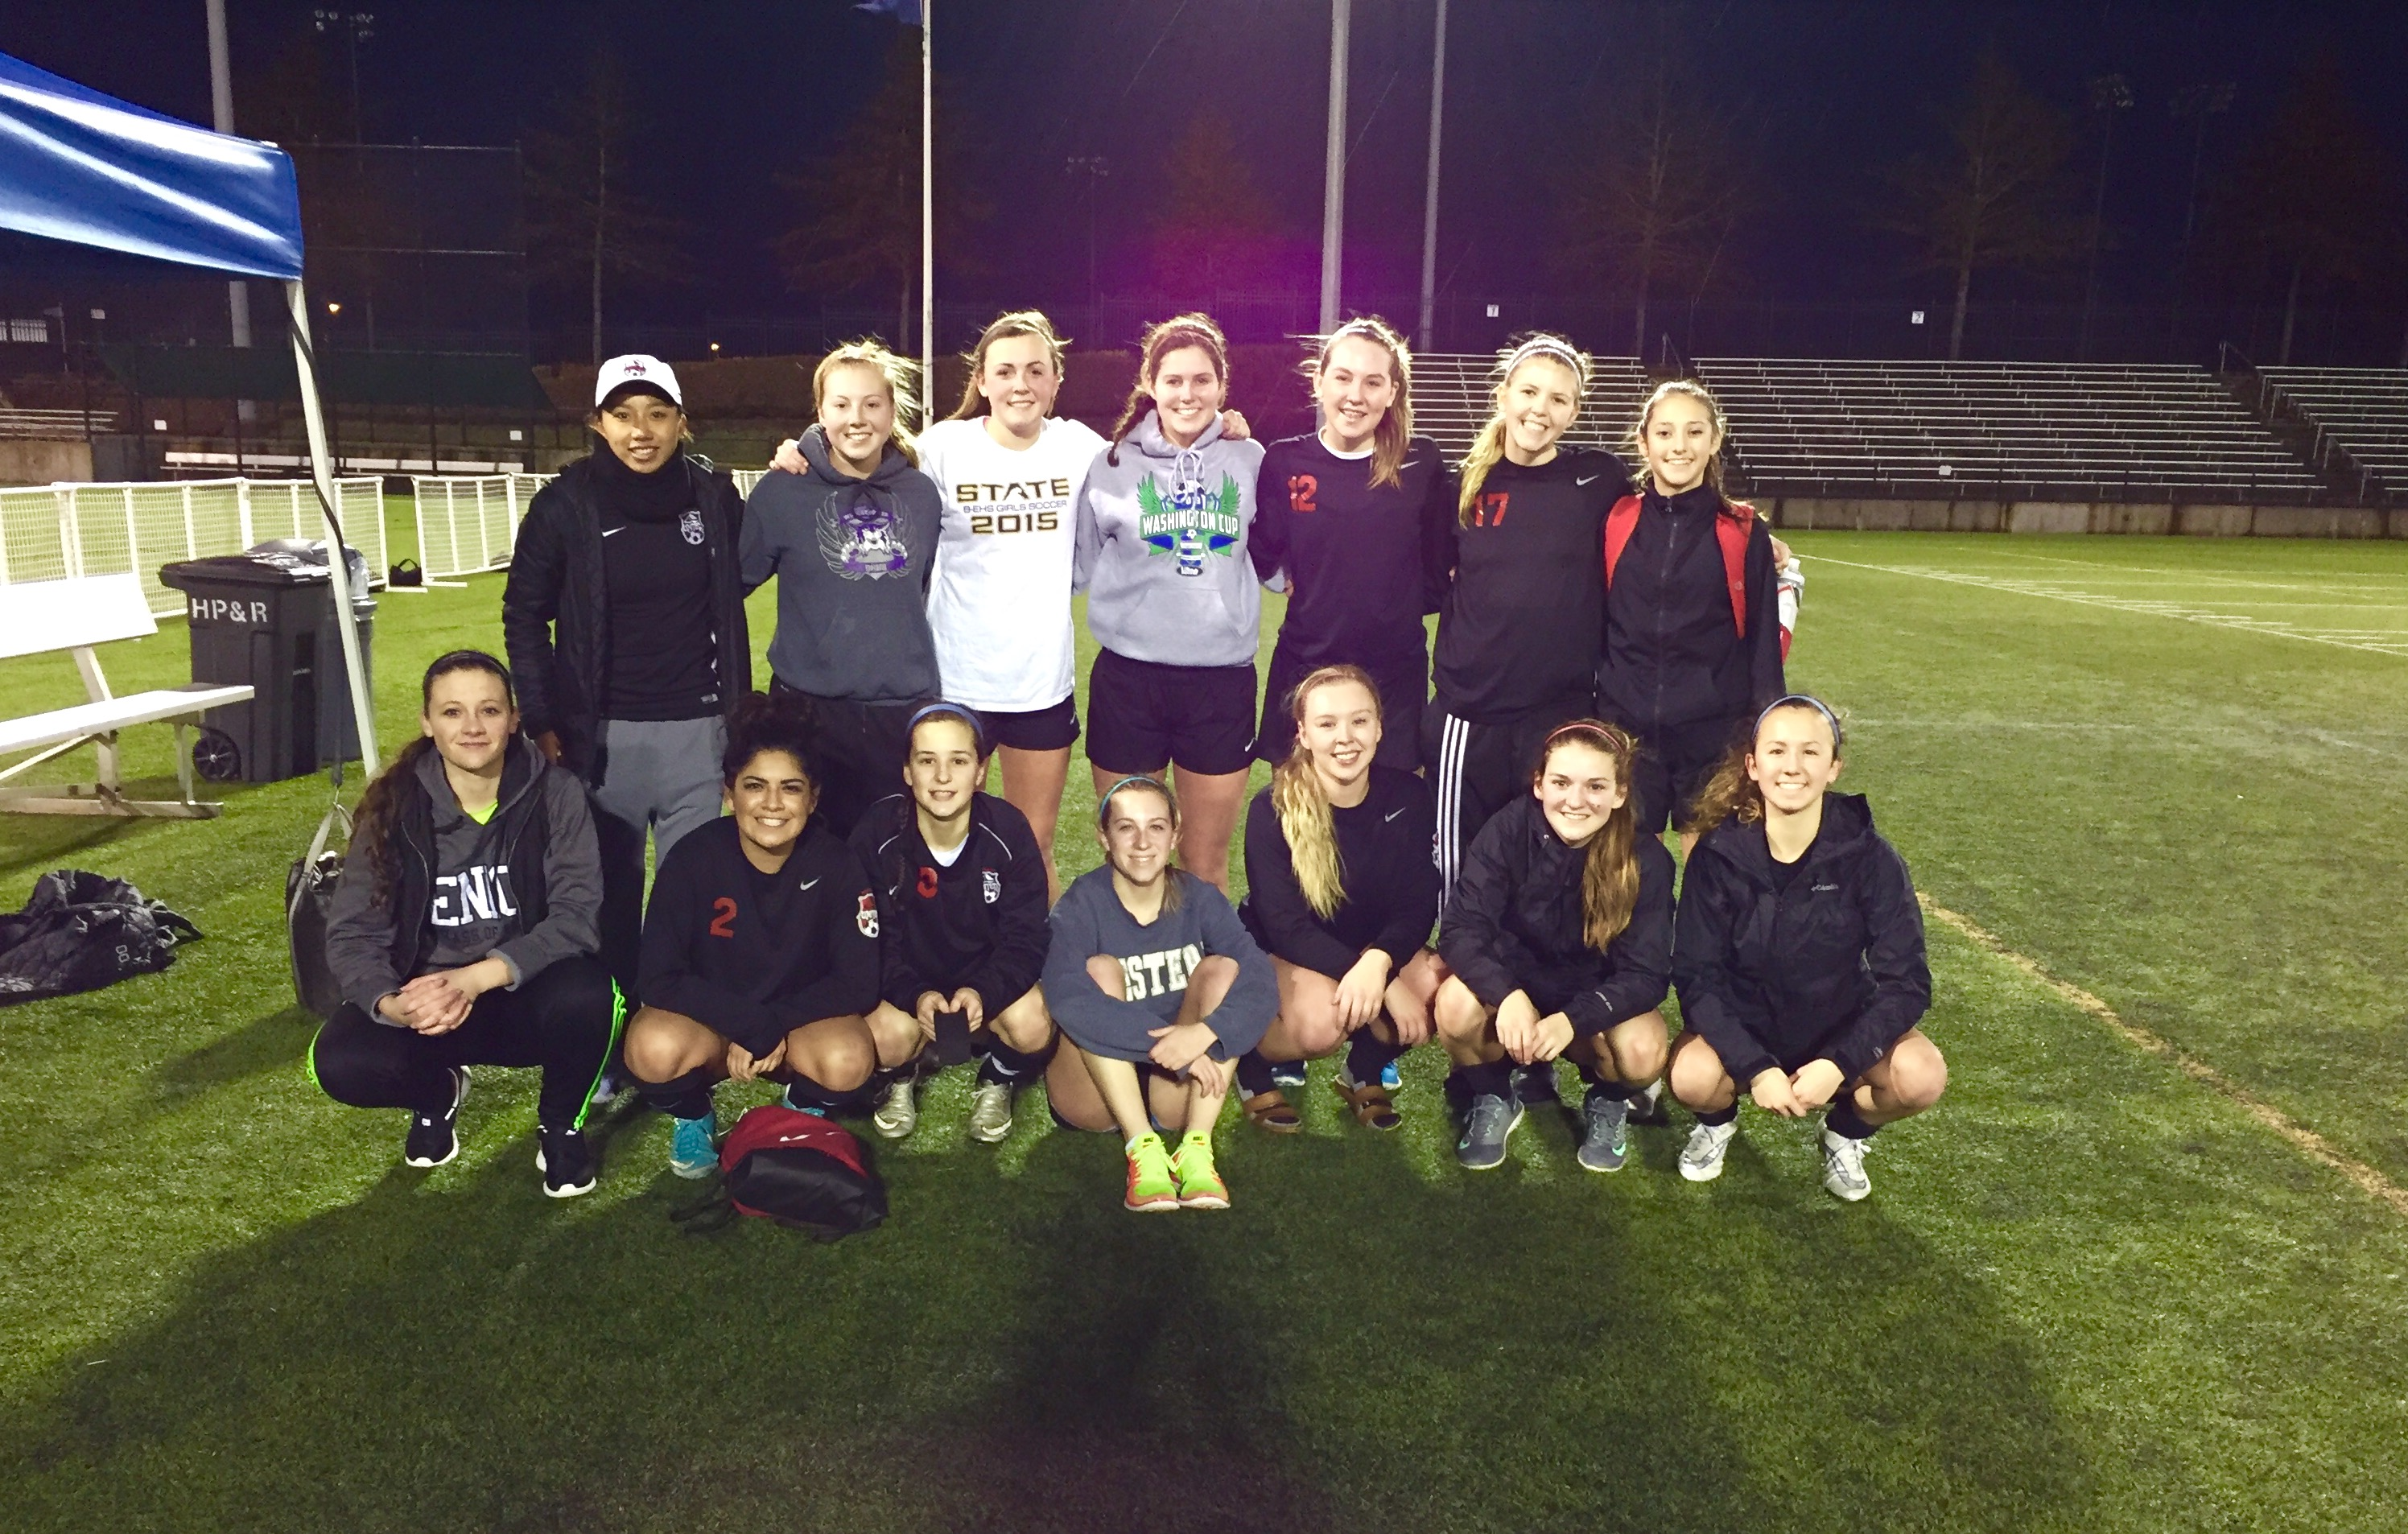 U18 Premier Girls Tie for 4th Place in 13th Annual Portland Winter College Showcase